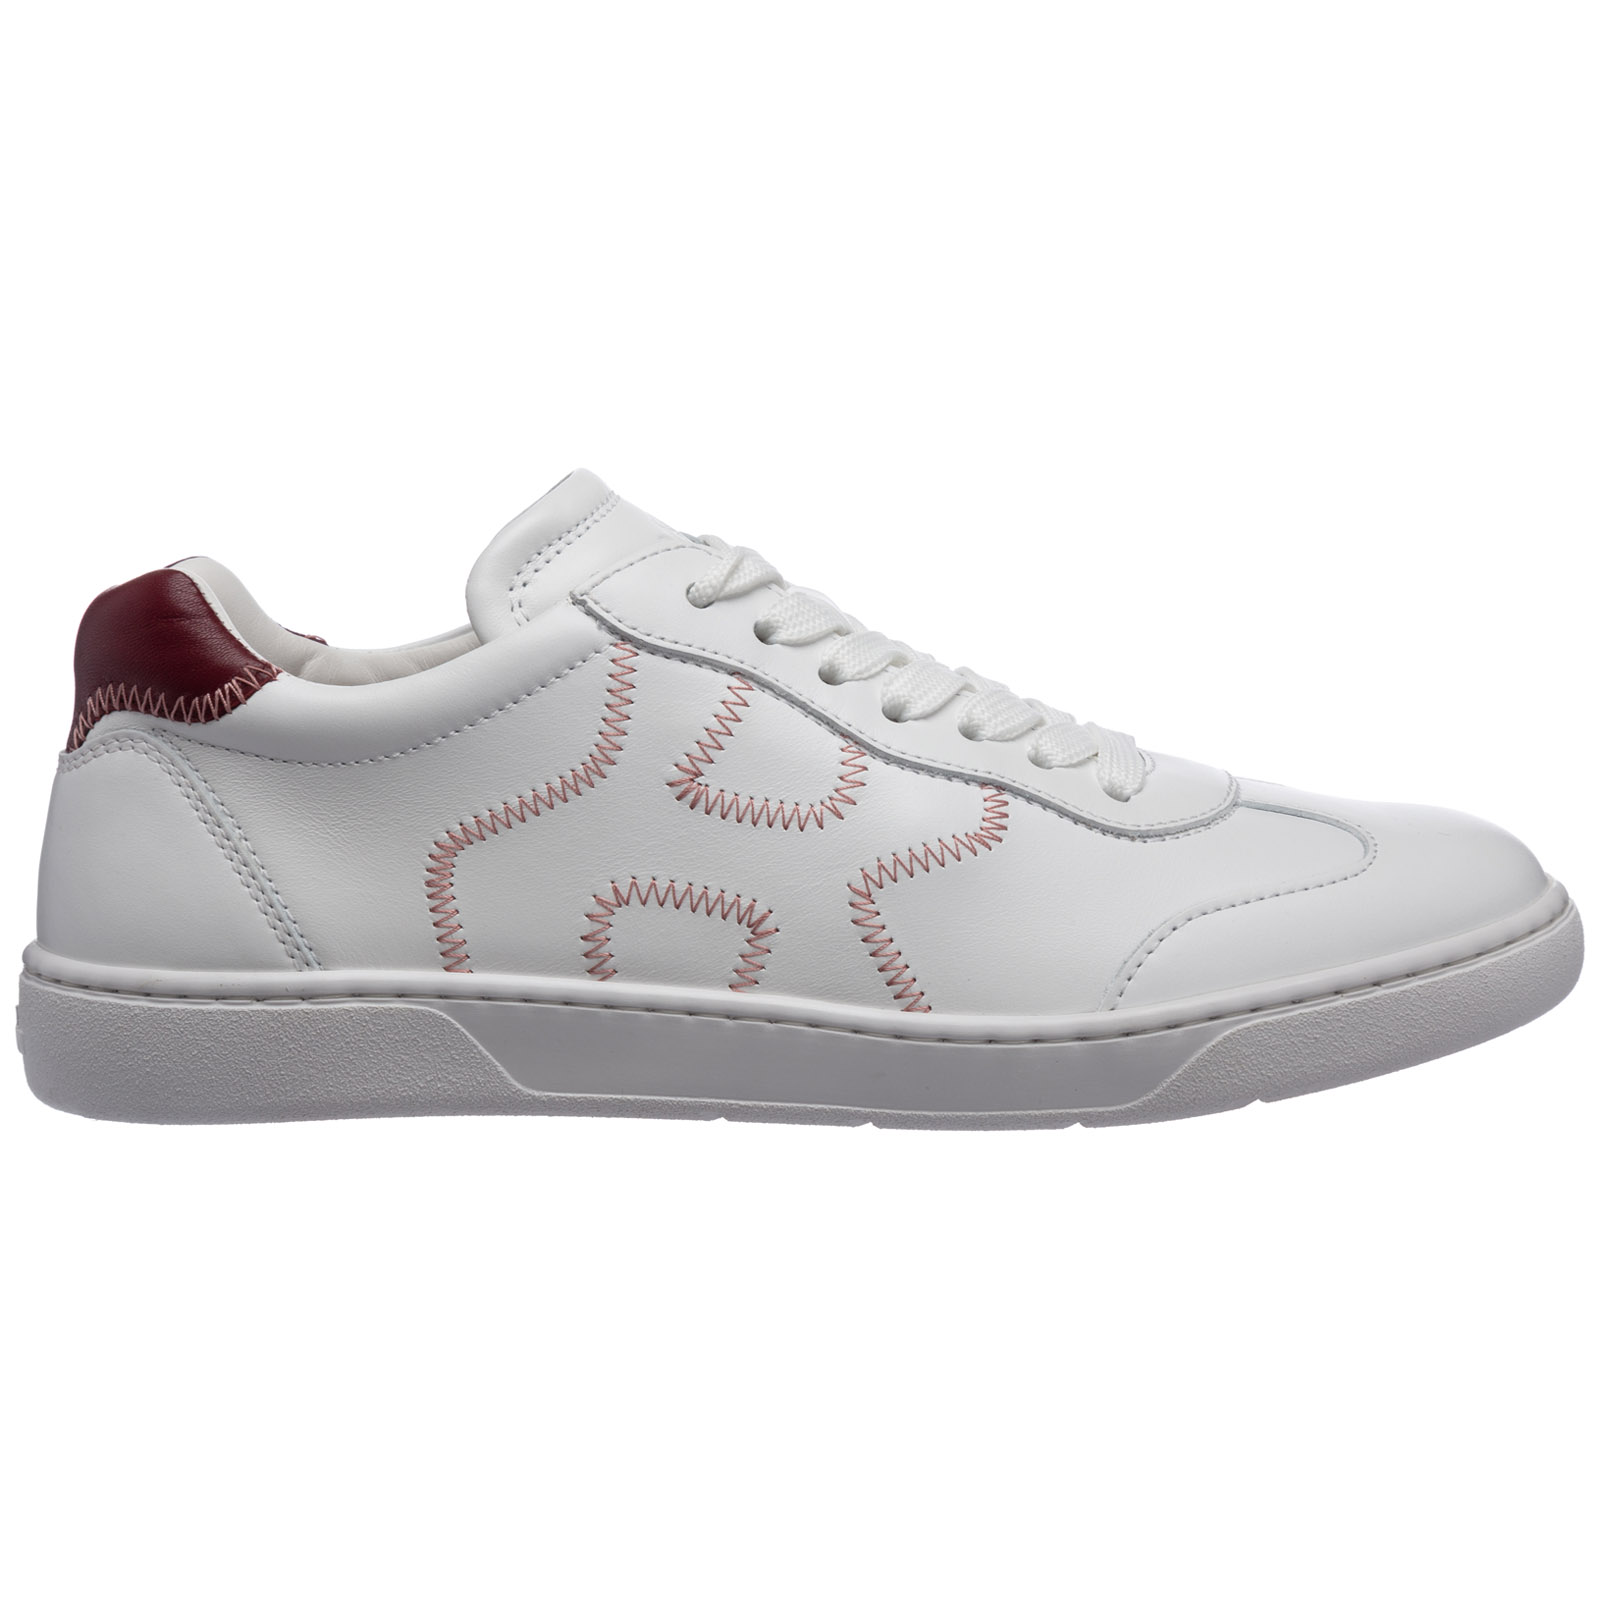 Hogan Leathers WOMEN'S SHOES LEATHER TRAINERS SNEAKERS H327